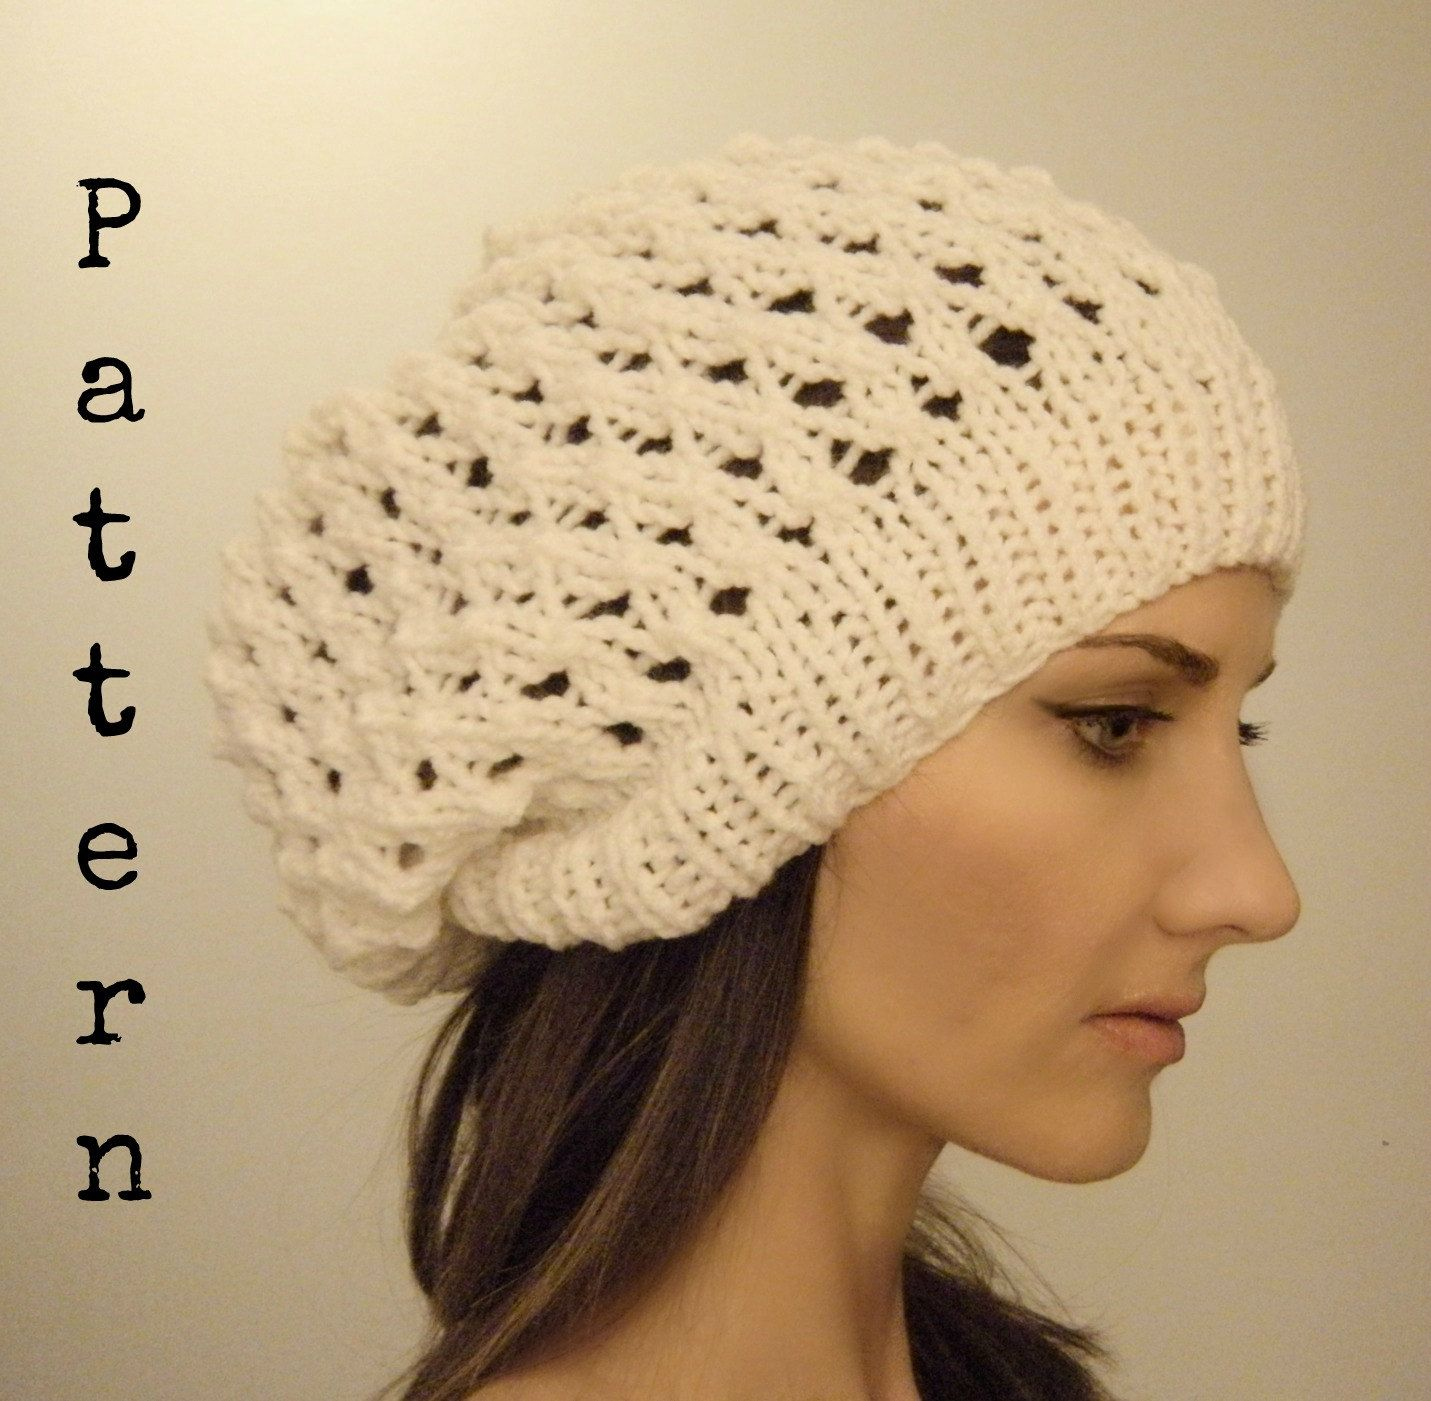 bb015393b25 Slouch hat PATTERN Lake Effect beanie beret by KittyDune on Etsy